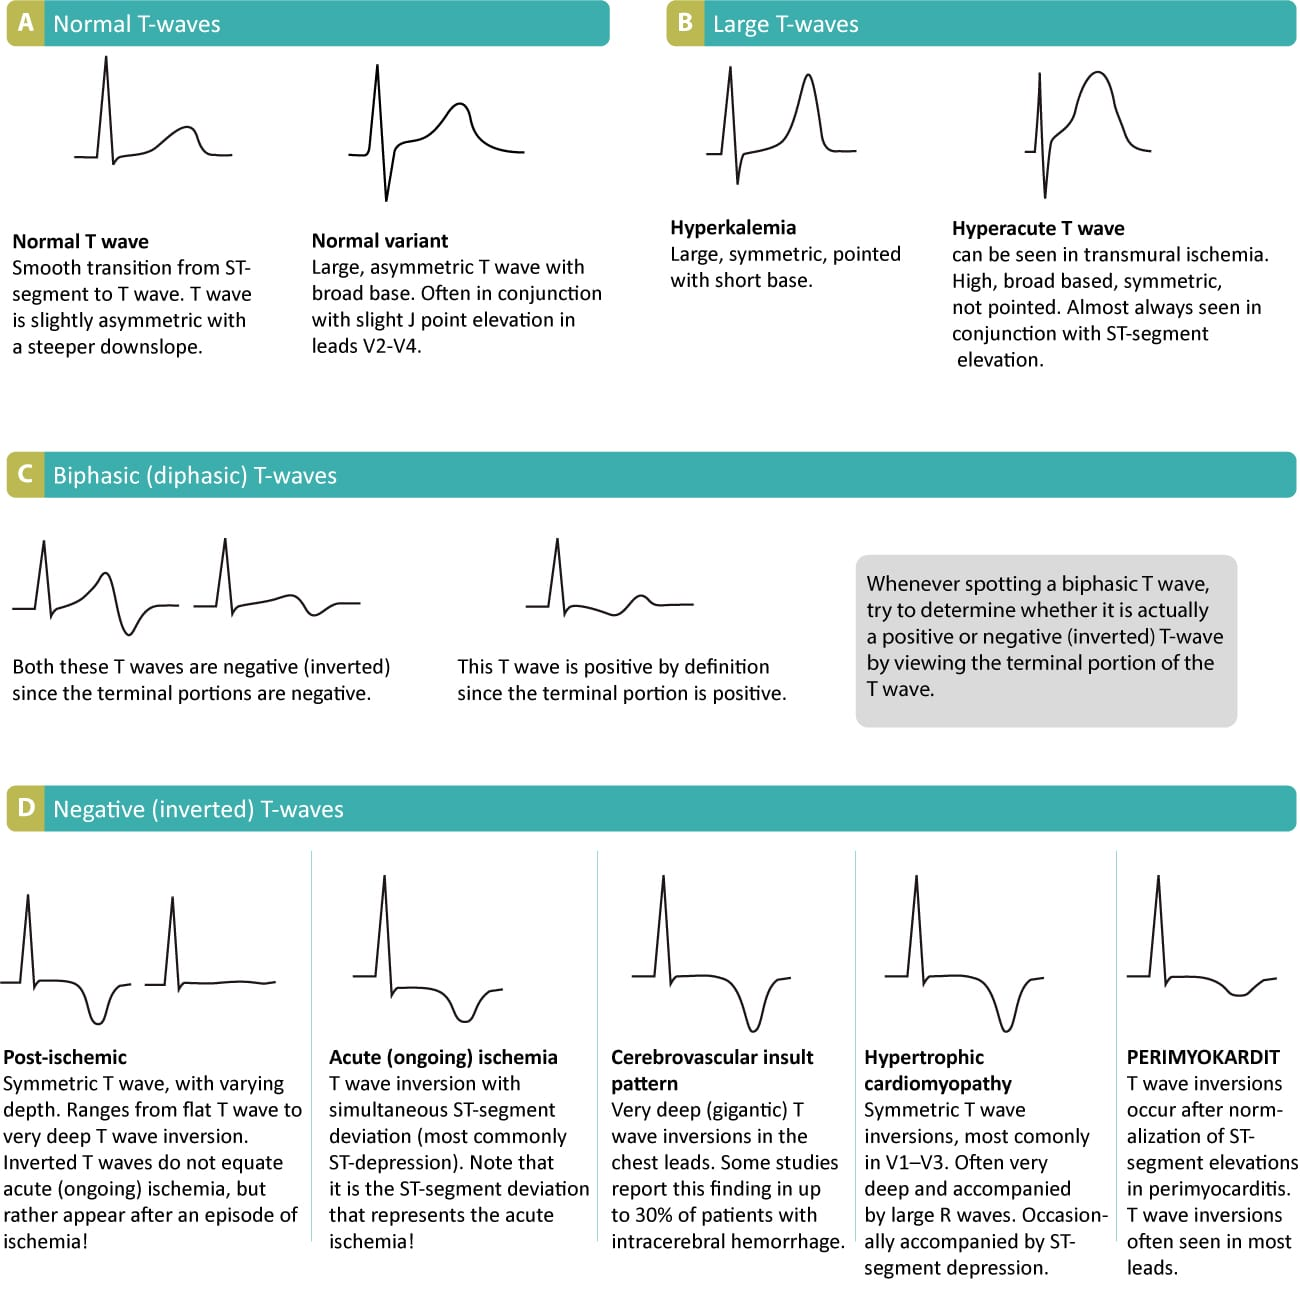 T Wave Inversions Ecg Hyperacute Wellens Sign De Winters Sign